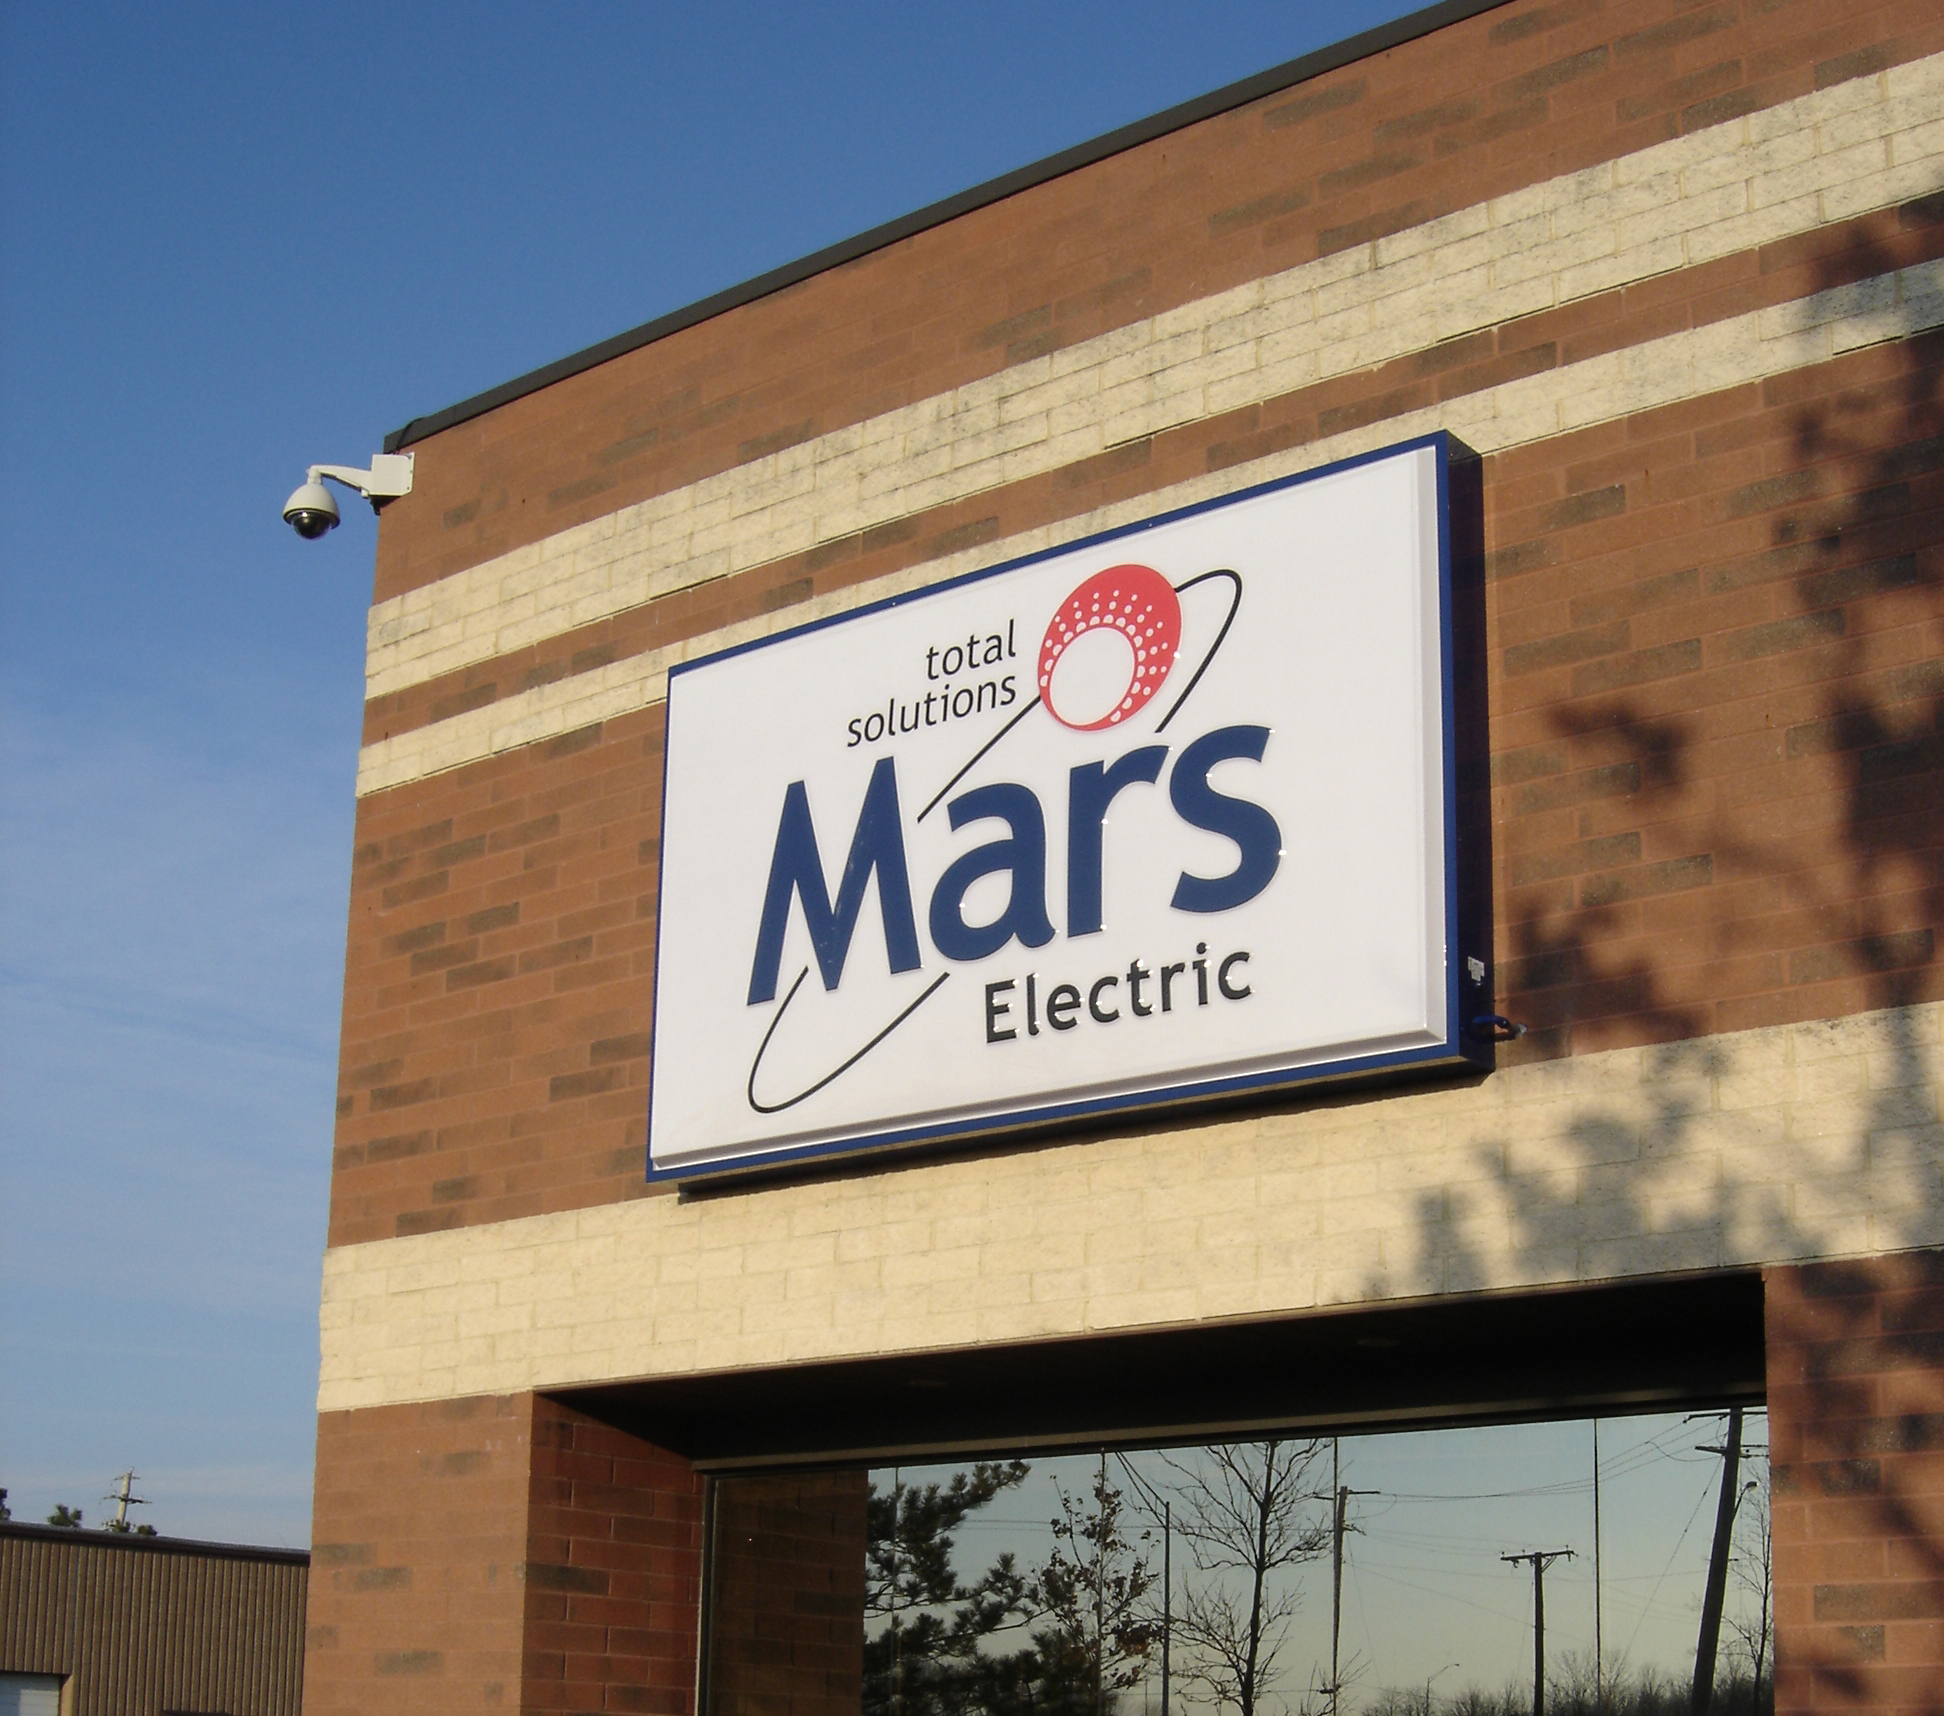 Mars illuminated sign